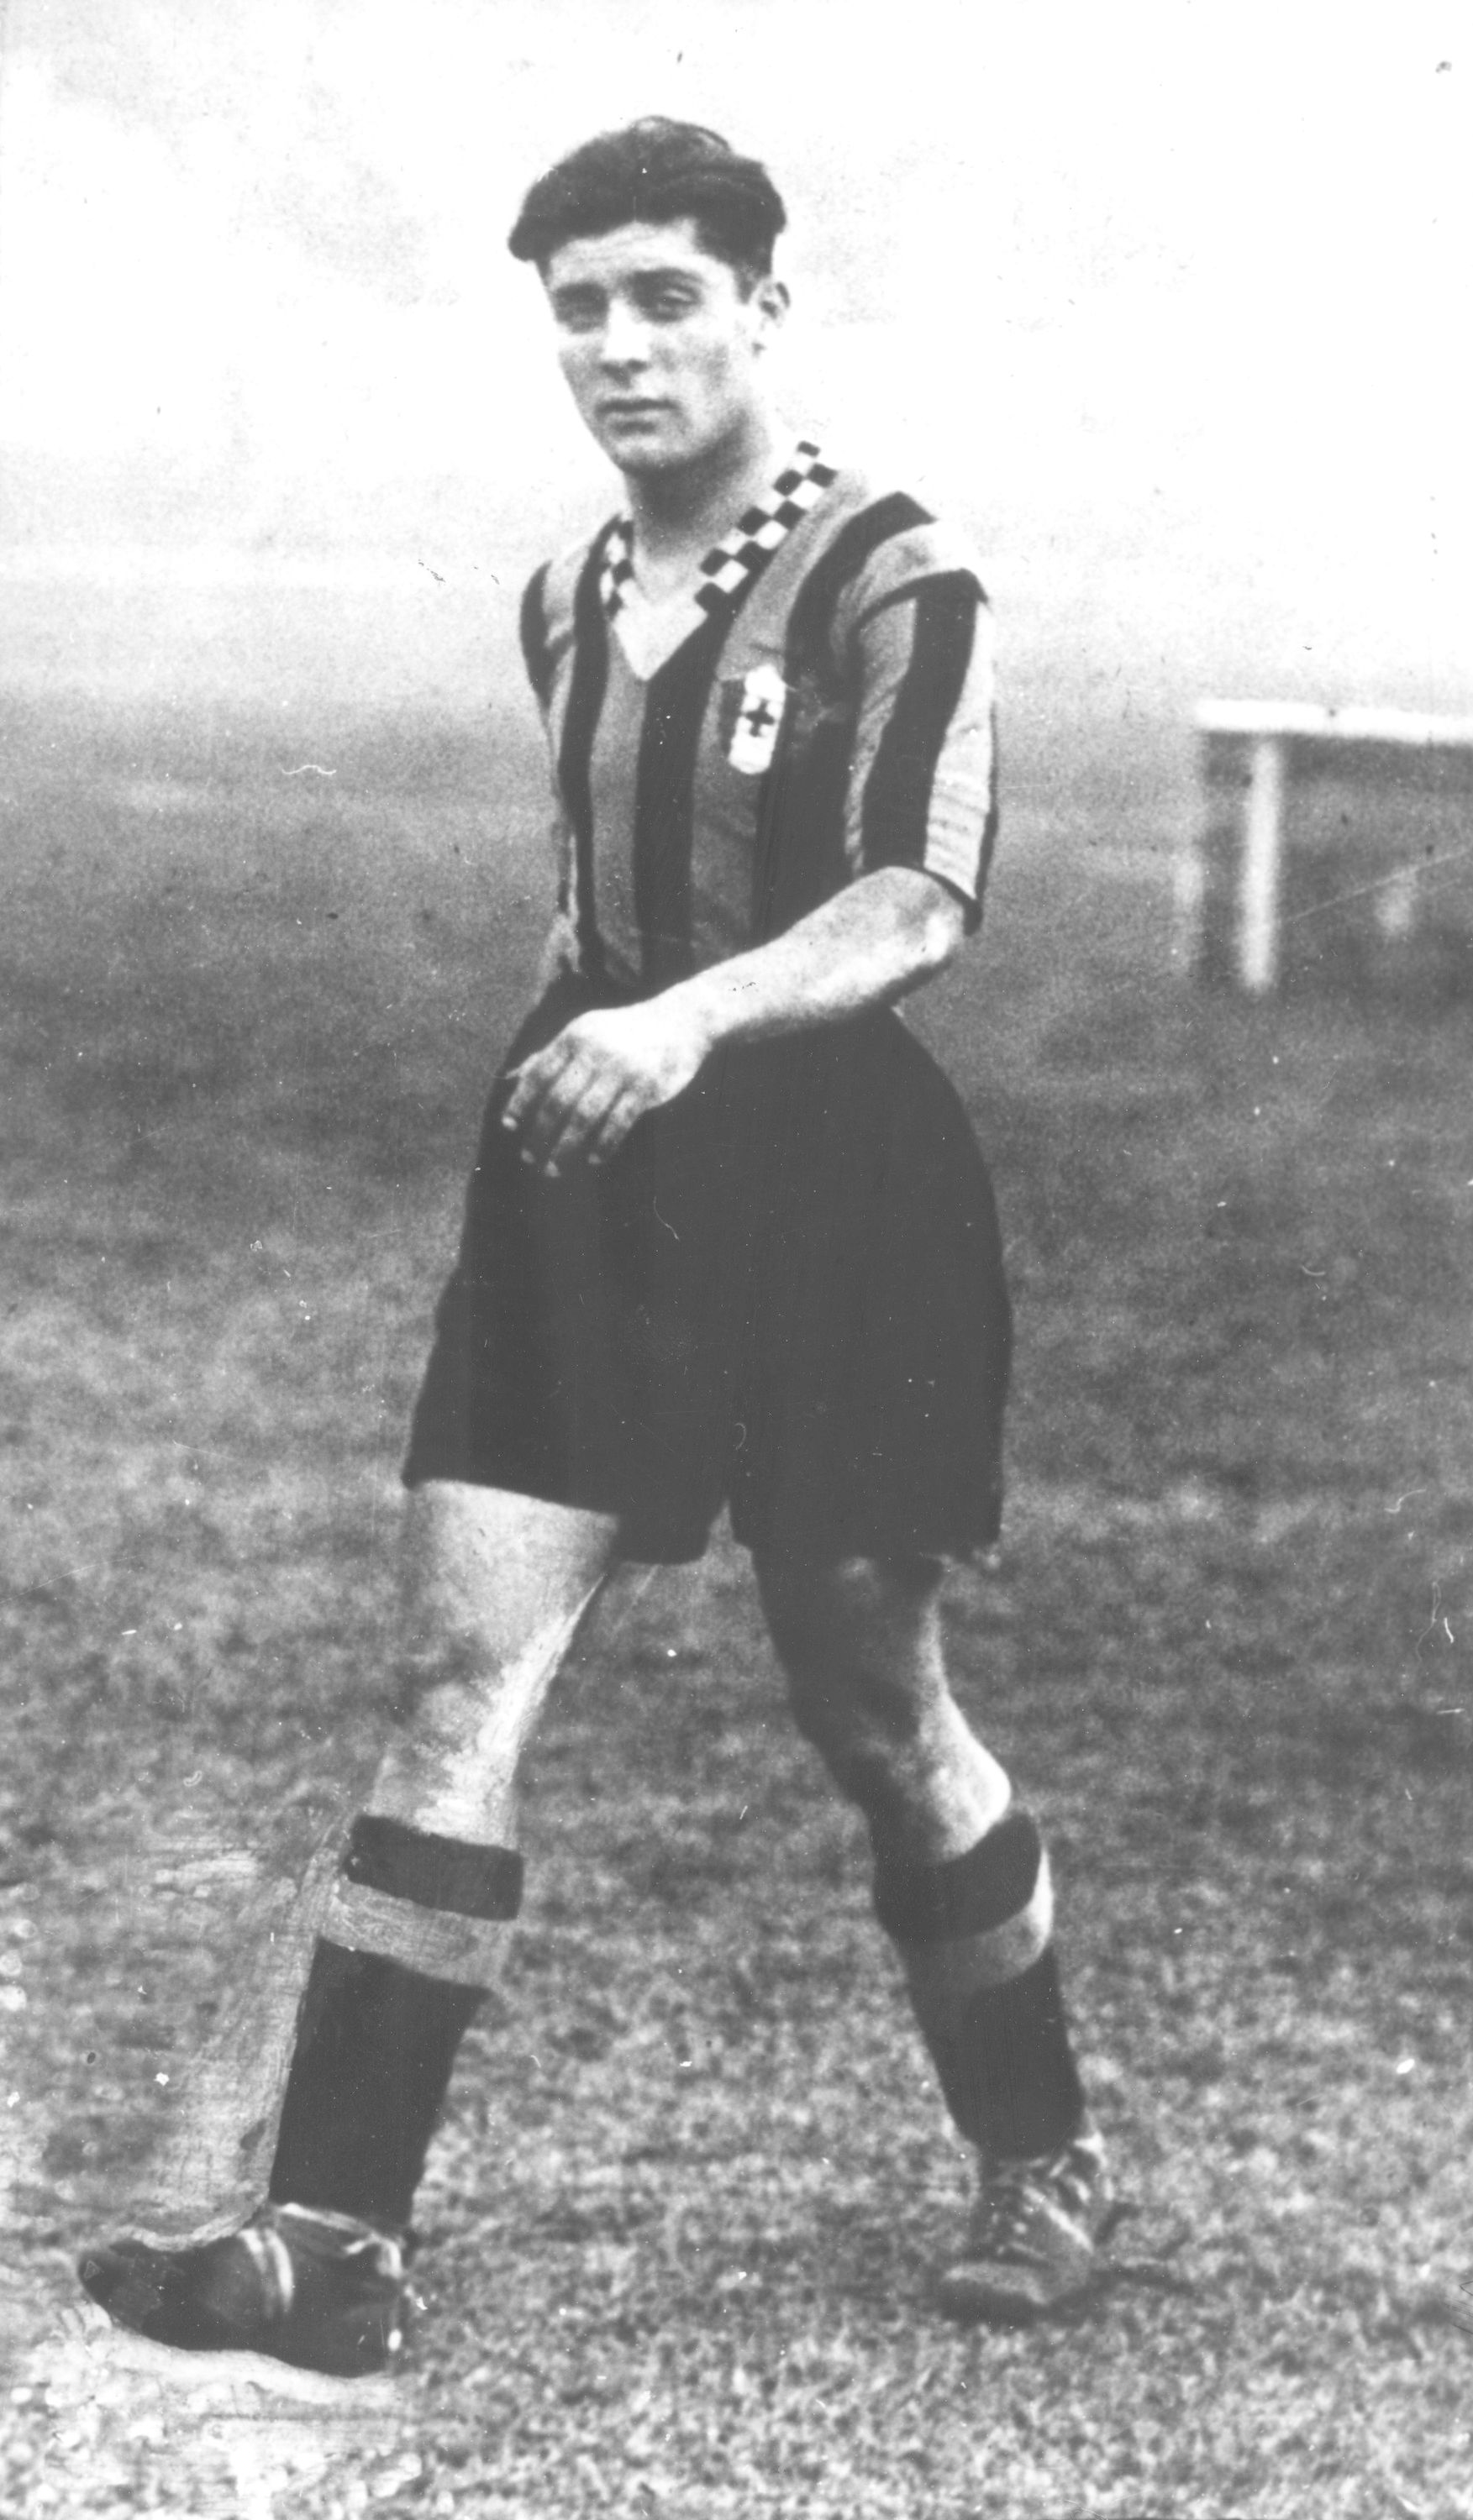 Giuseppe Meazza was born 108 years ago today